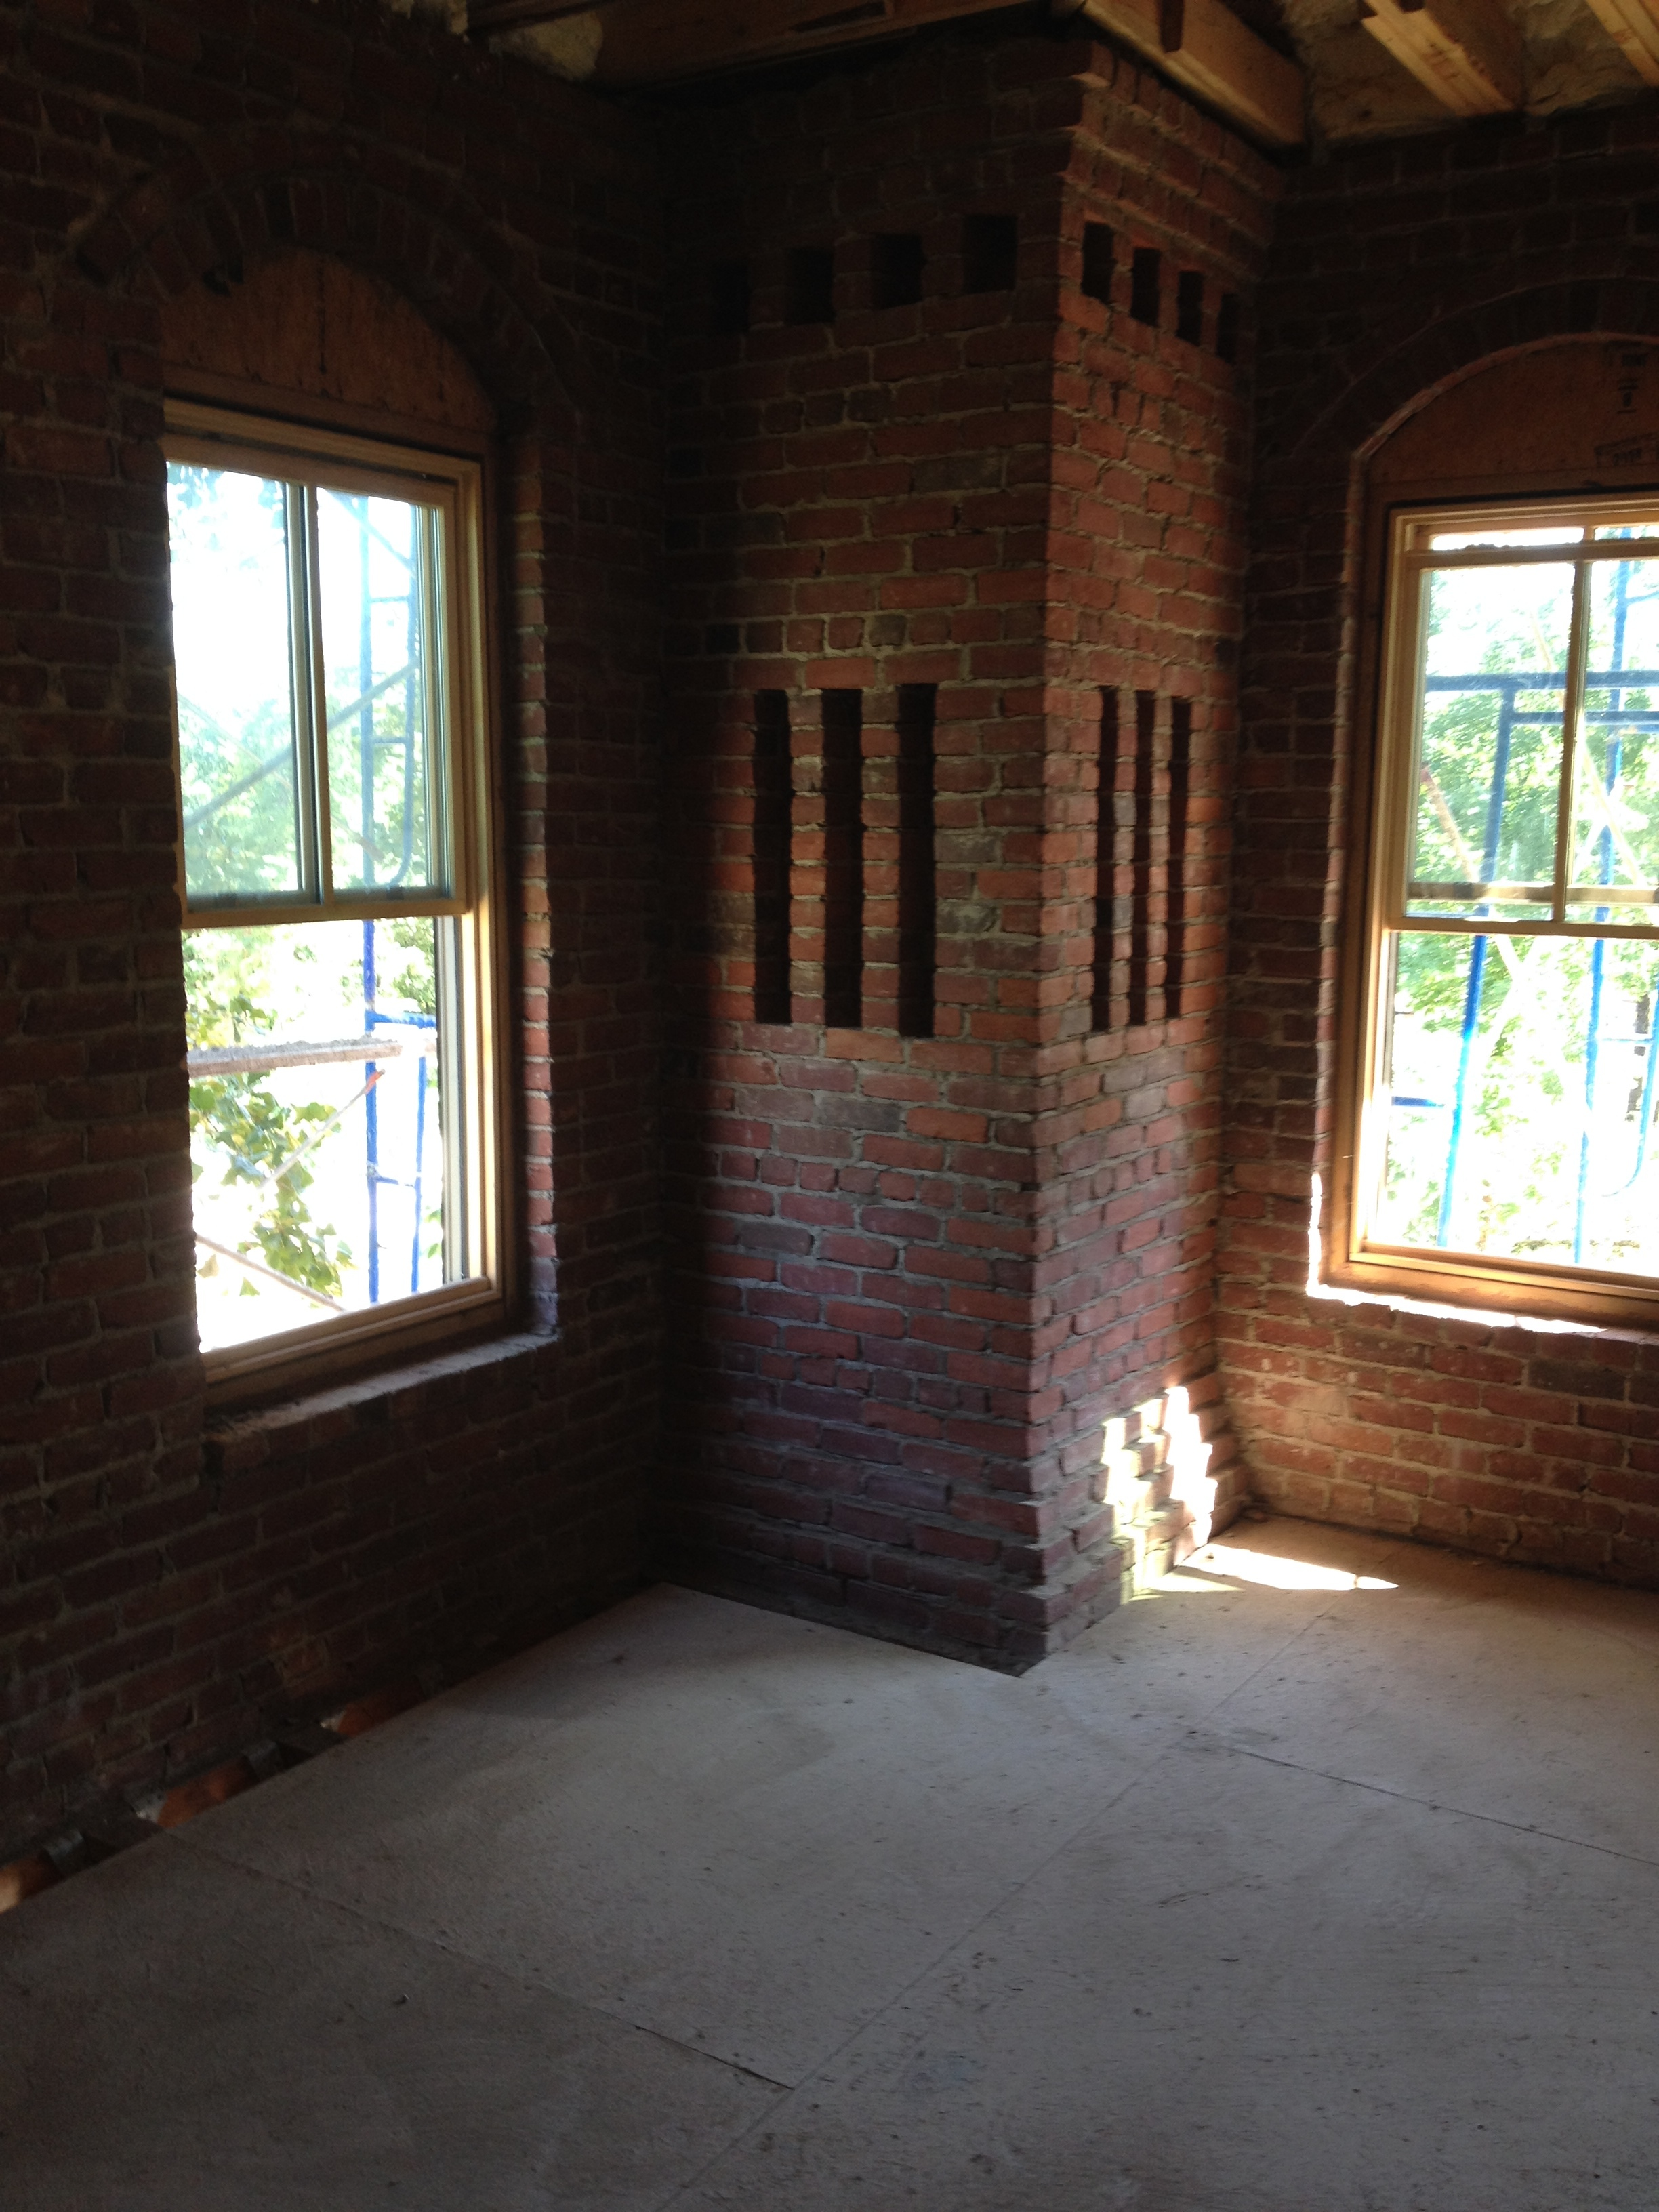 structural masonry, fireplace chimney, decorative corbeling and flutes